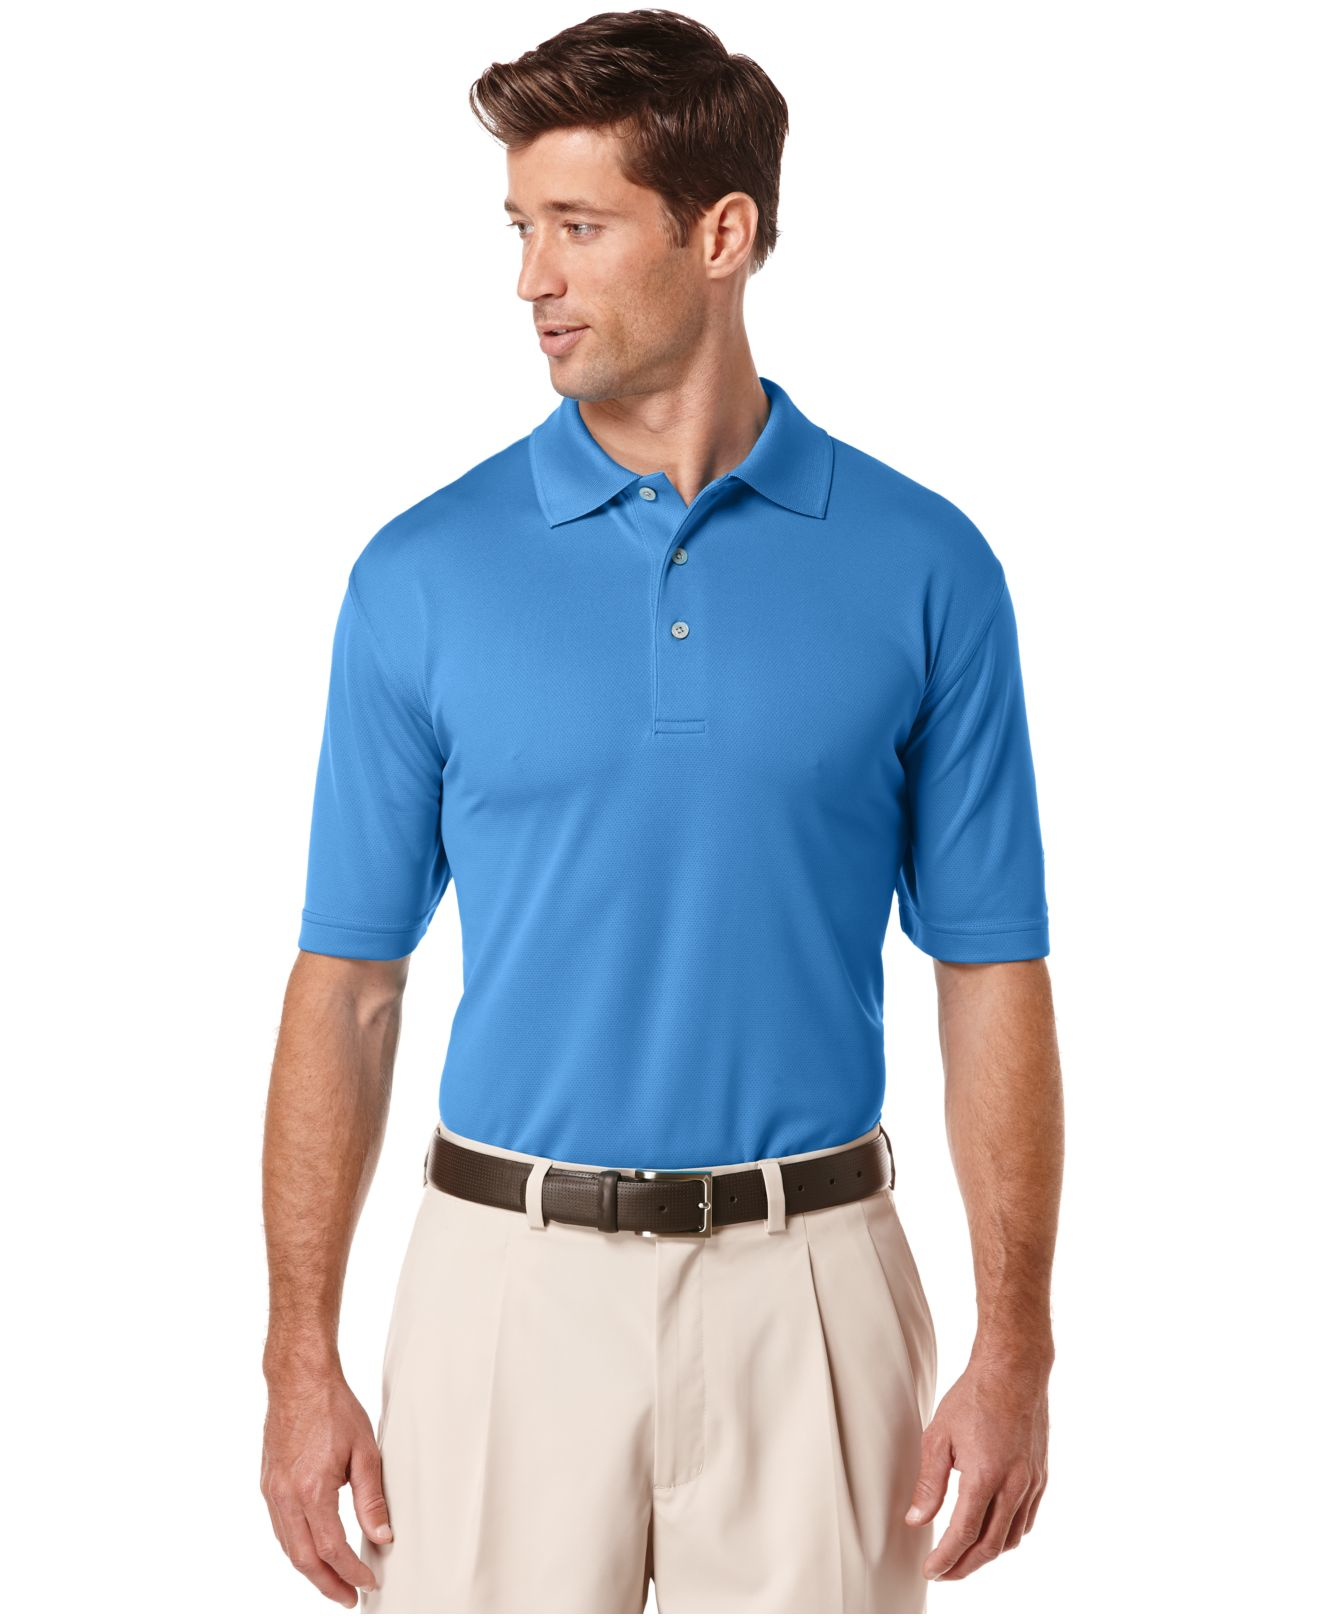 pga tour airflux solid golf polo in blue for men